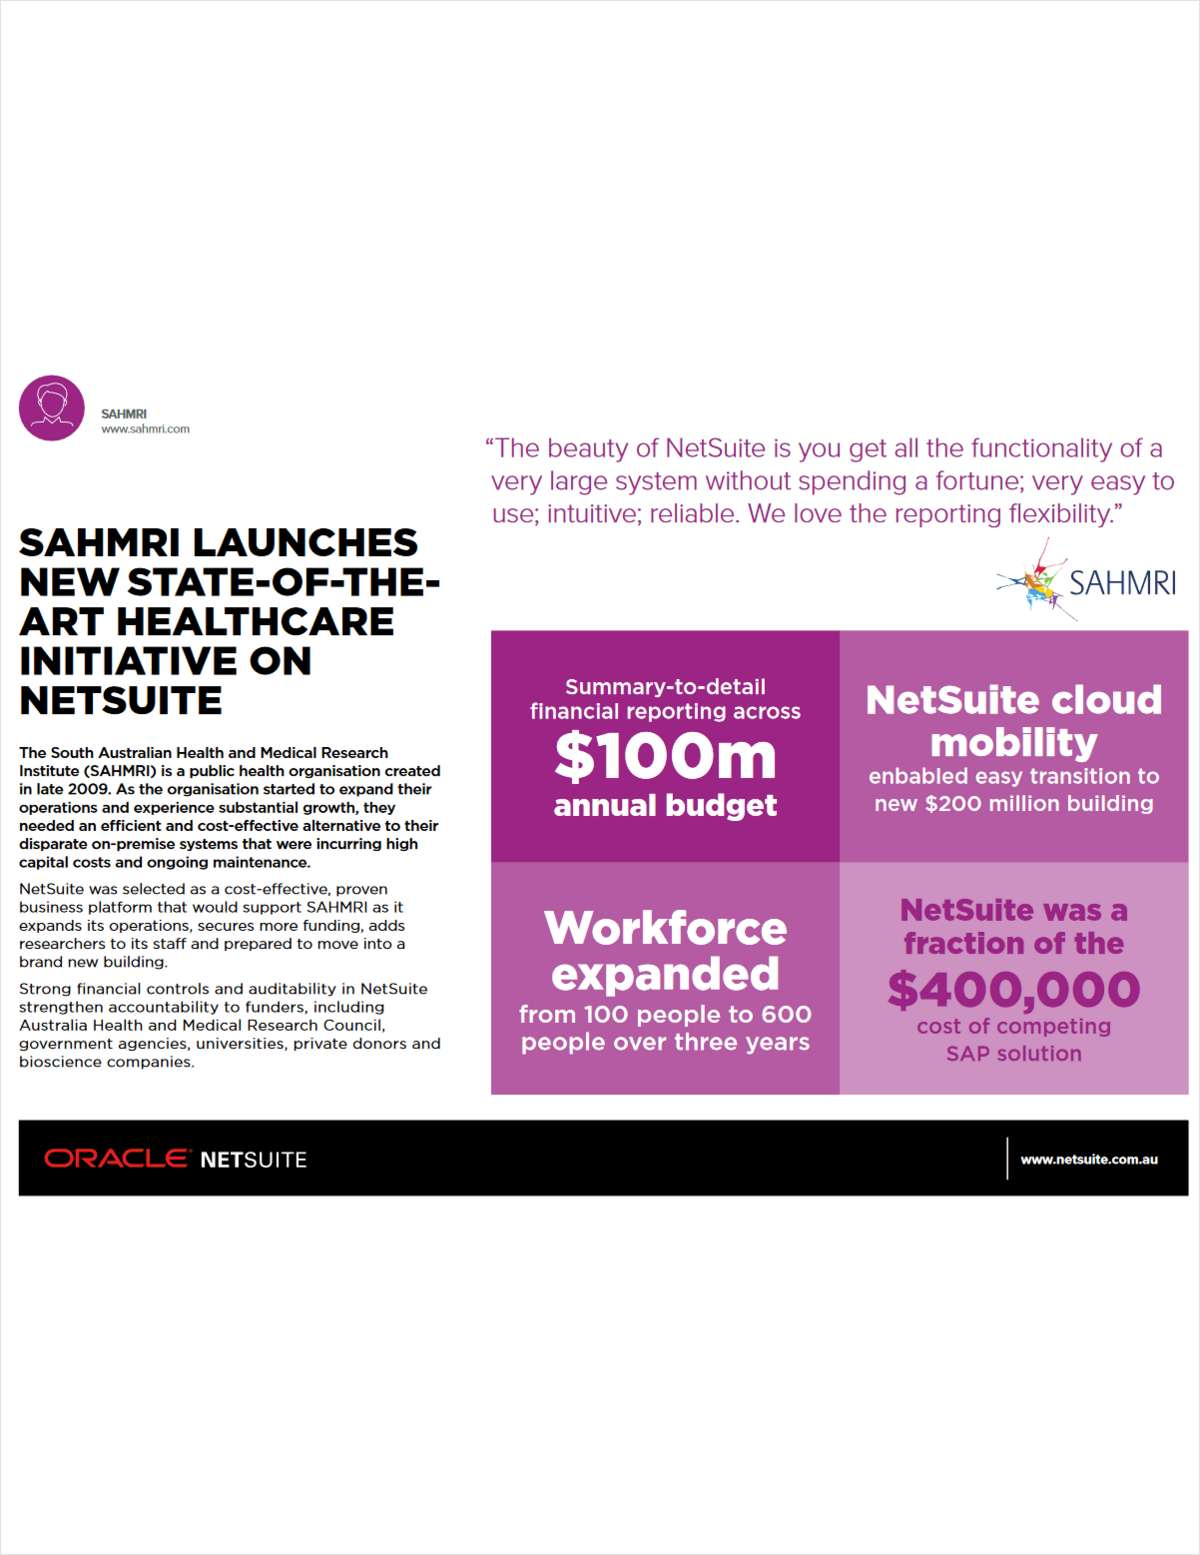 SAHMRI Launches New State-of-the-Art Healthcare Initiative on NetSuite